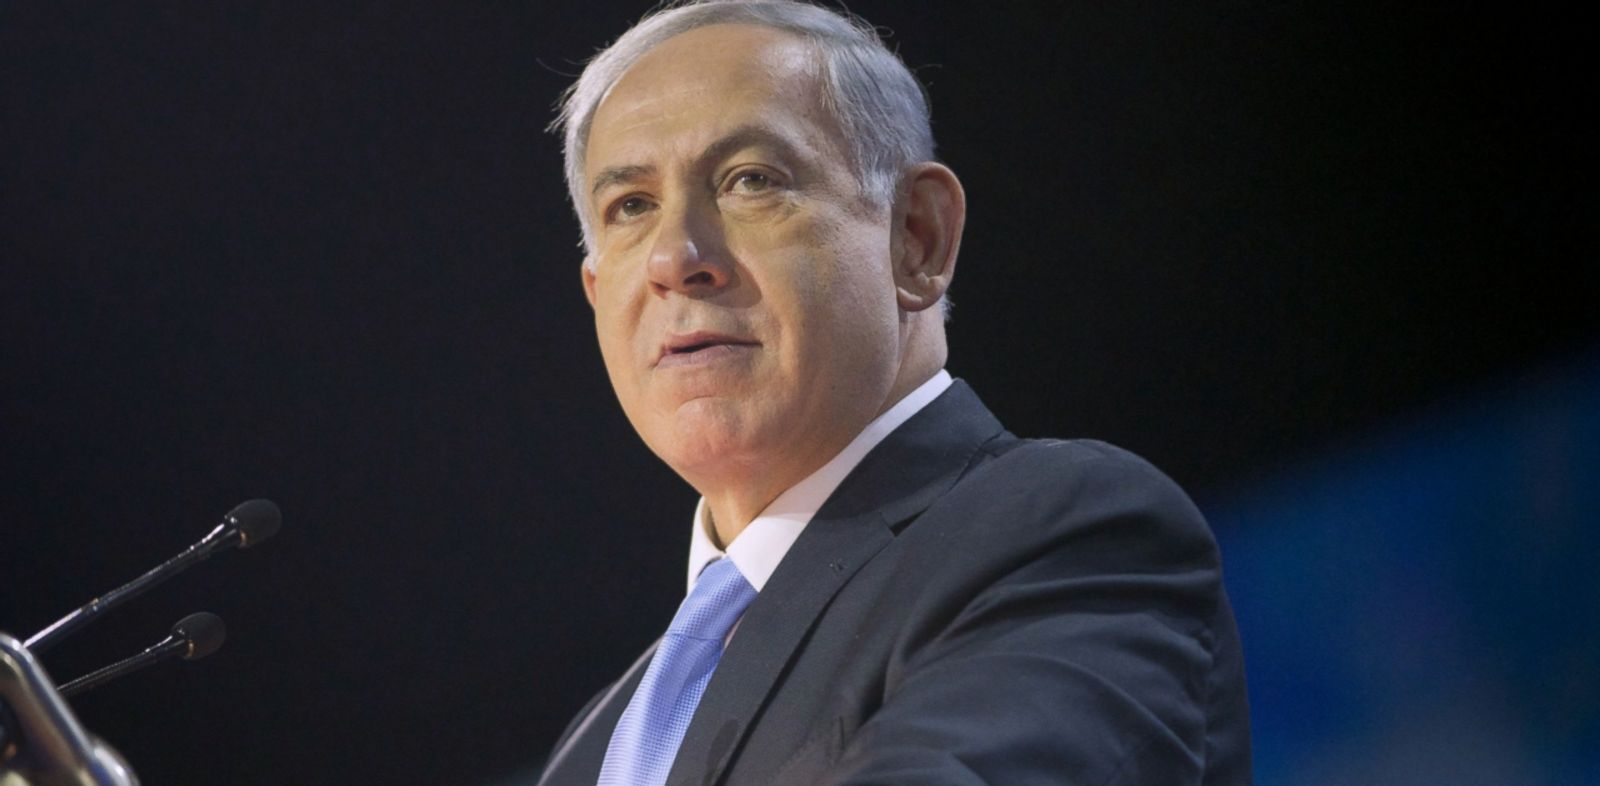 VIDEO: The Israeli prime minister will speak before a joint session of Congress.